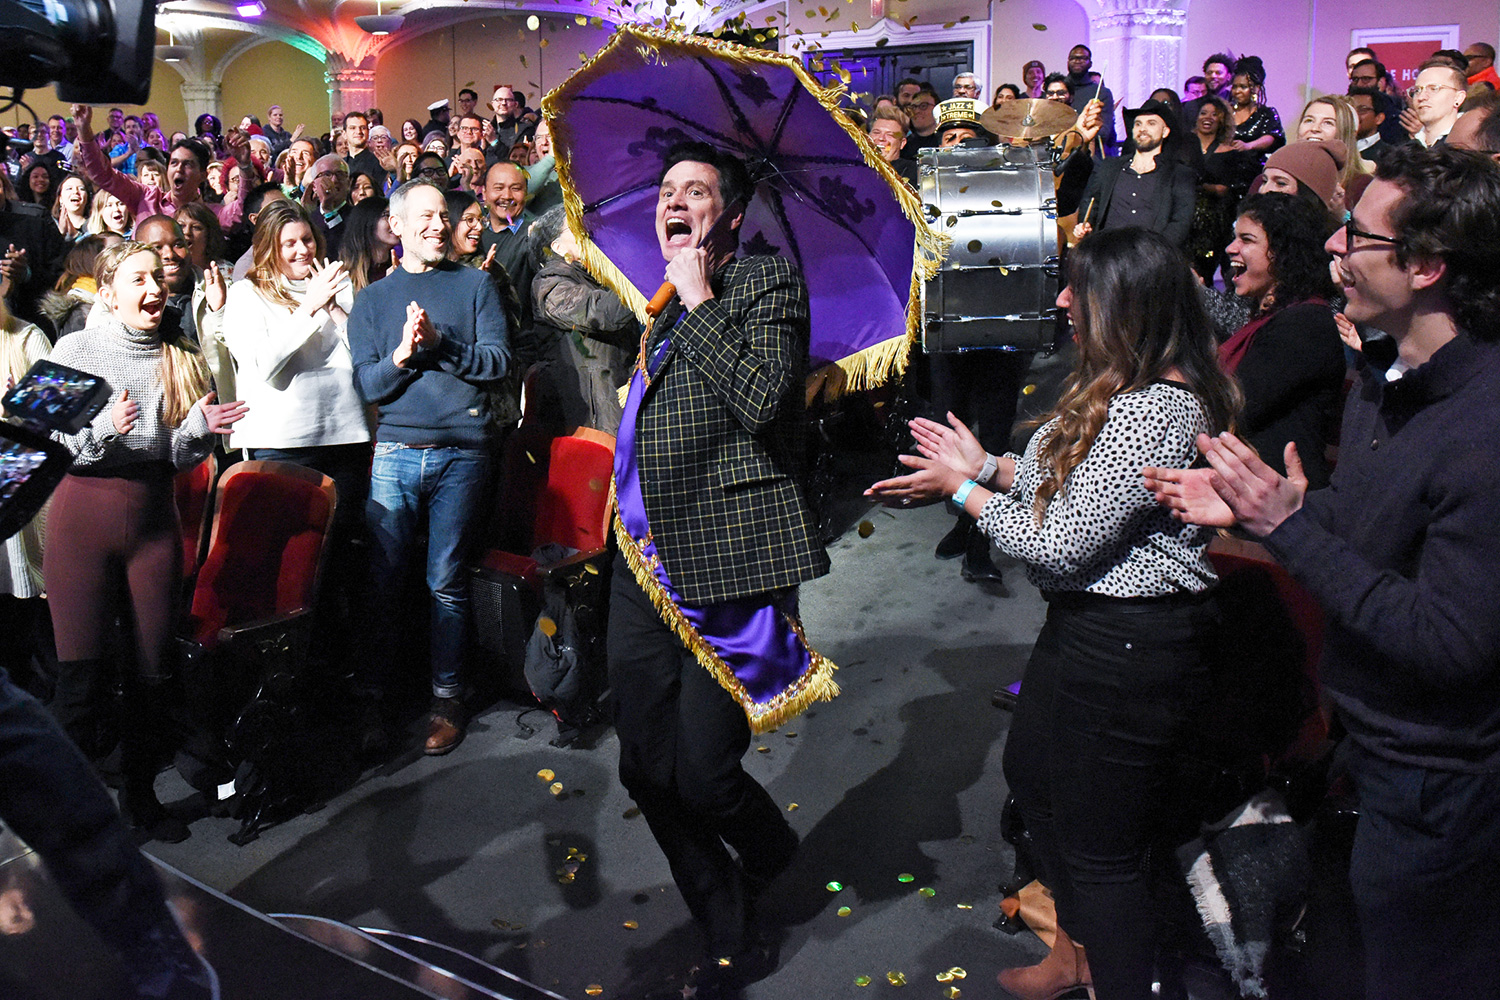 The Late Show with Stephen Colbert and guest Jim Carrey during Wednesday's February 5, 2020 show.